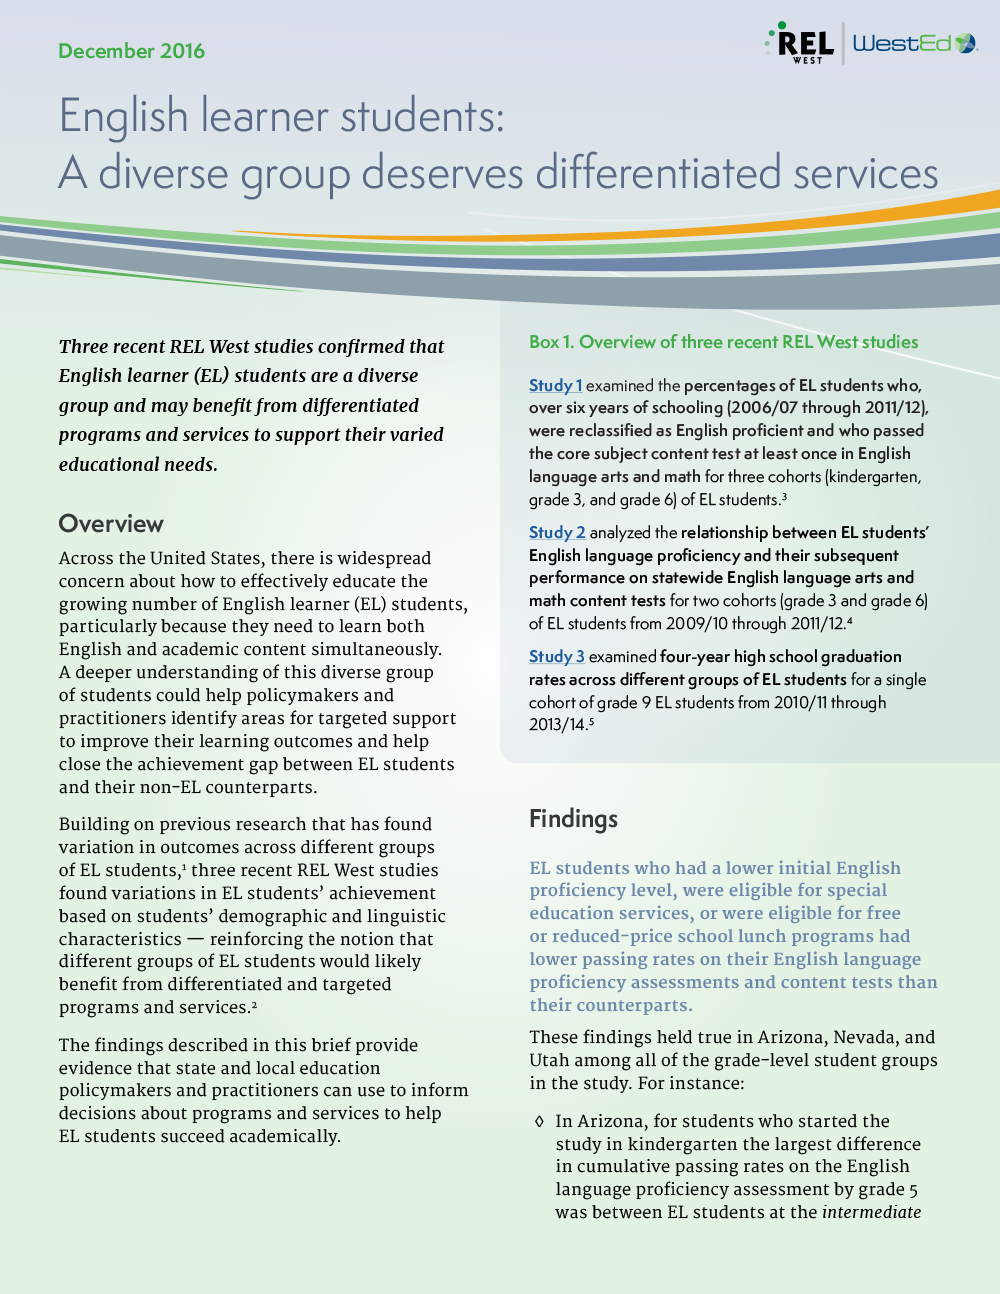 Cover for English Learner Students: A Diverse Group Deserves Differentiated Services